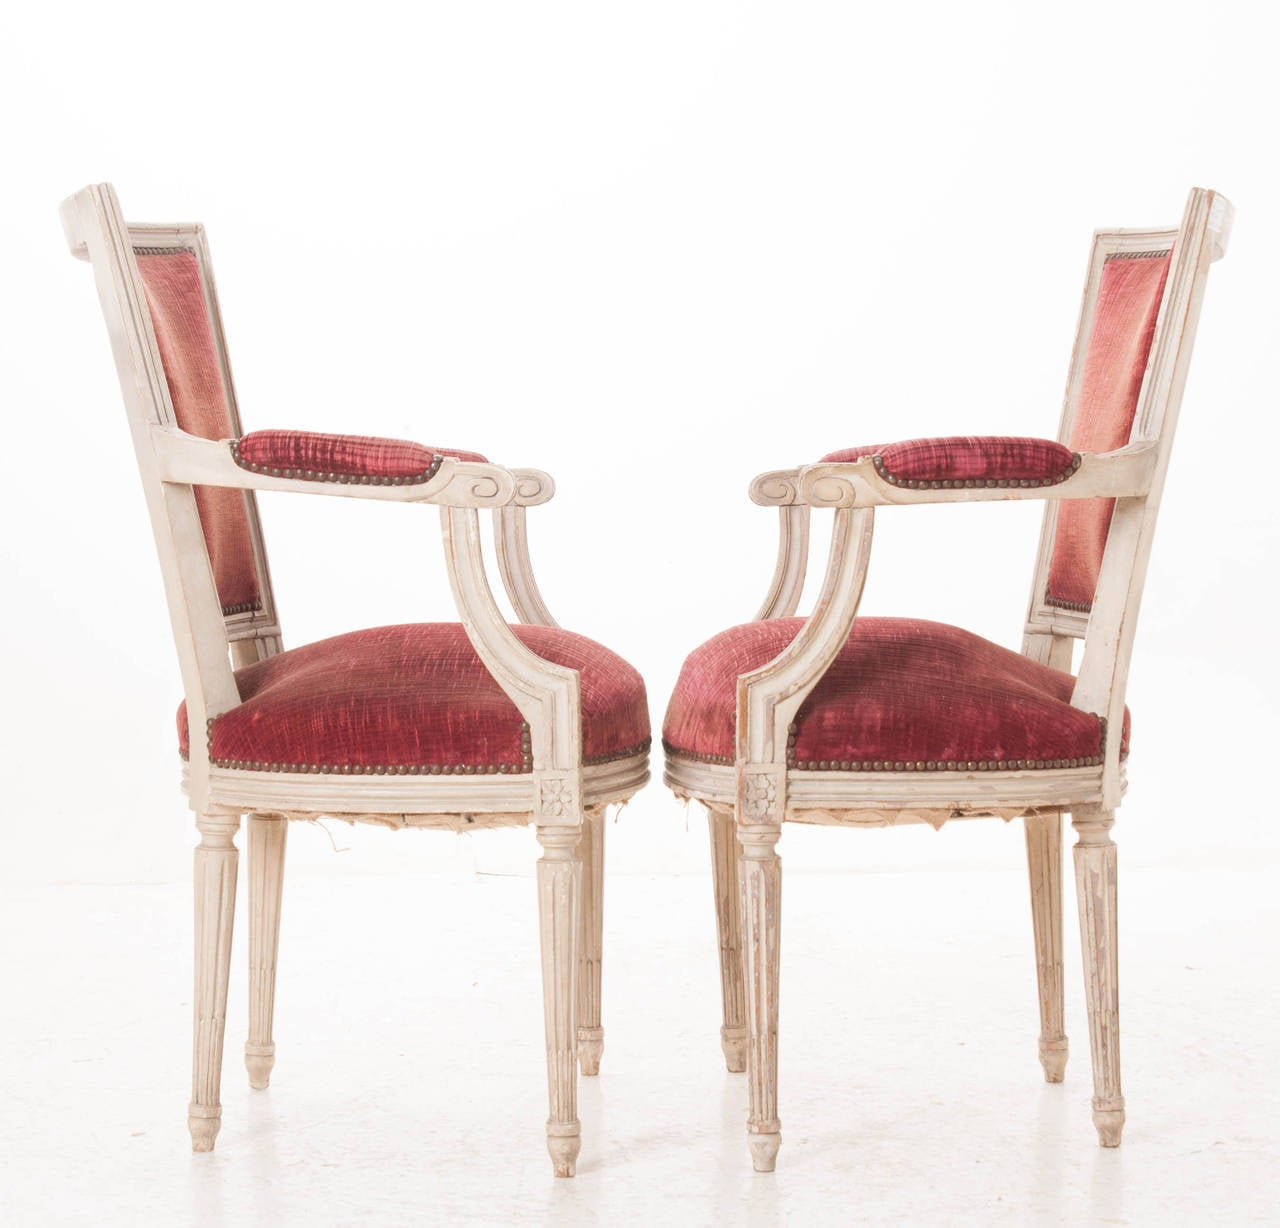 Pair of French 20th Century Louis XVI Style Armchairs In Good Condition For Sale In Baton Rouge, LA